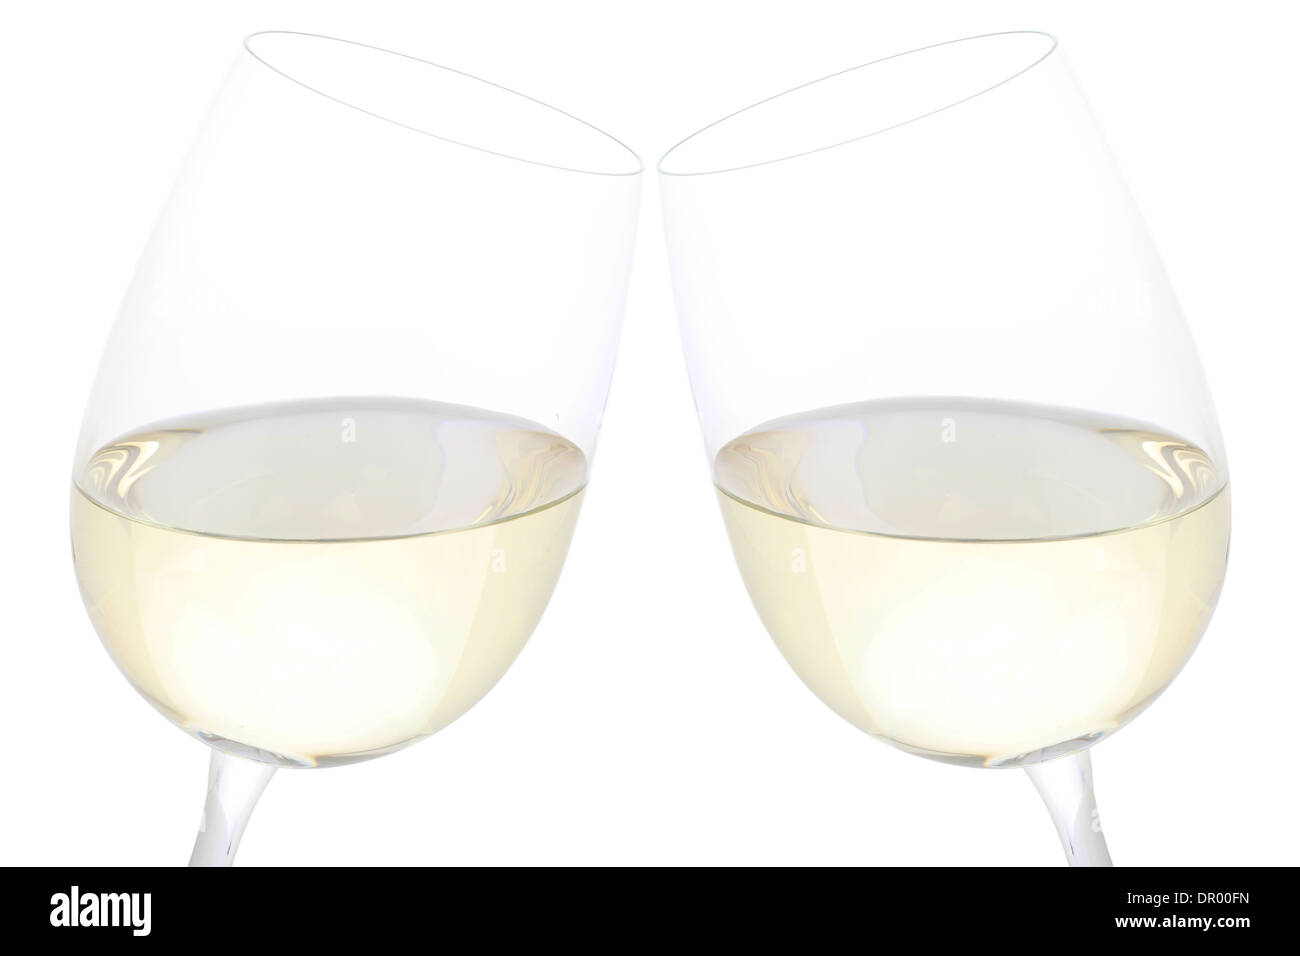 Clink glasses with white wine, isolated on a white background - Stock Image